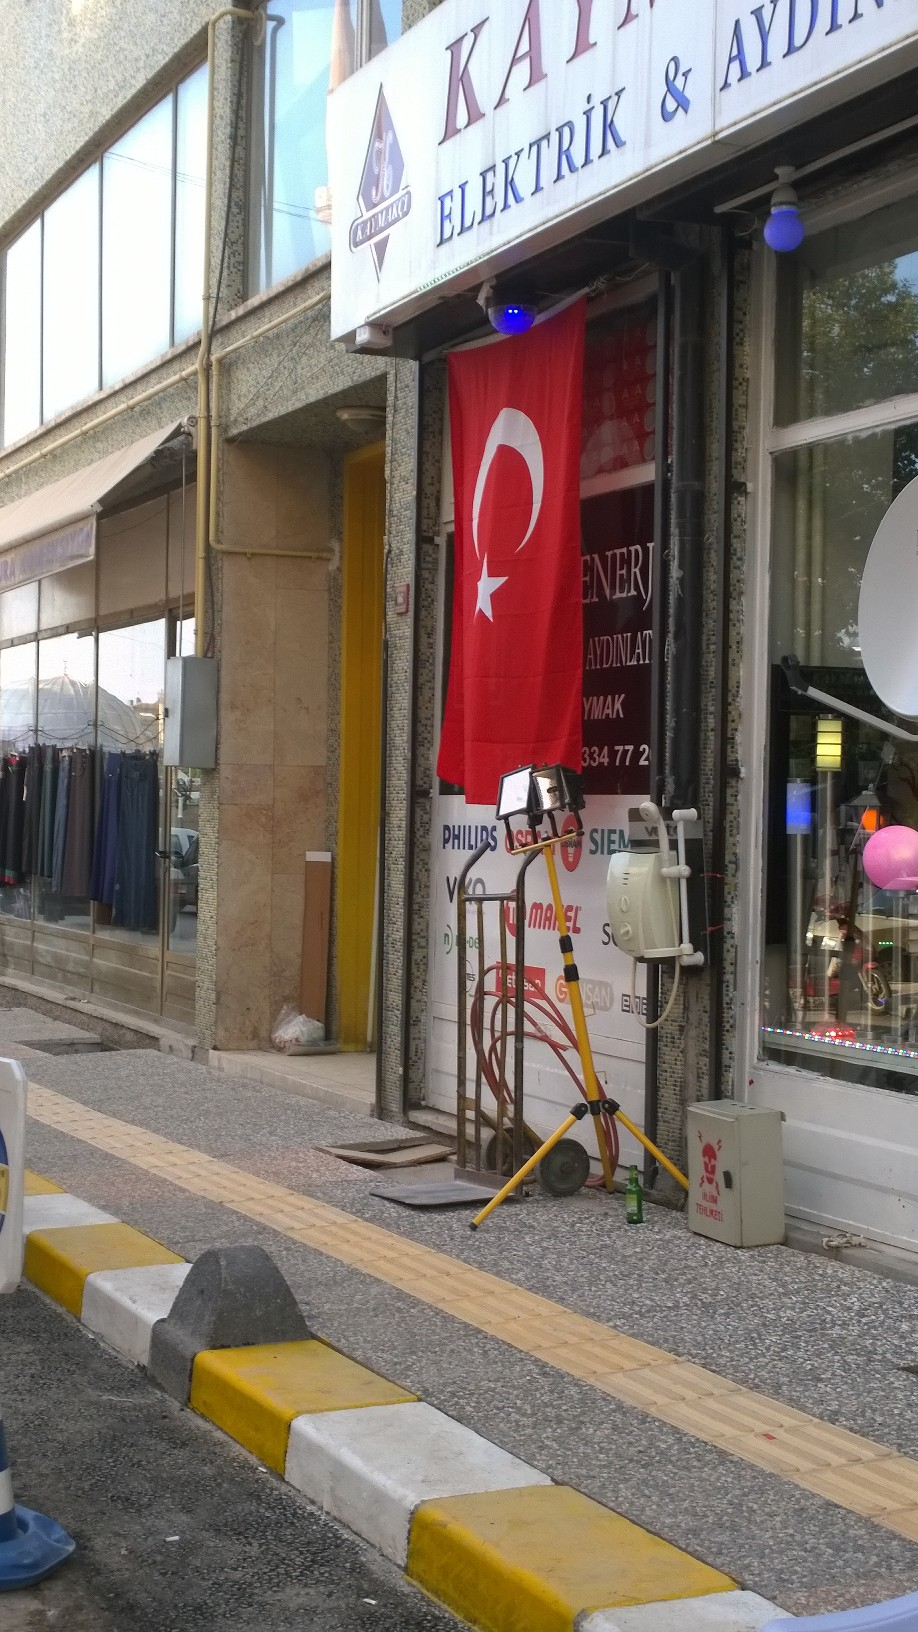 A very common sight in every Turkish city, of Turkish flags hoisted outside establishments since the killing of Turkish soldiers by the PKK.